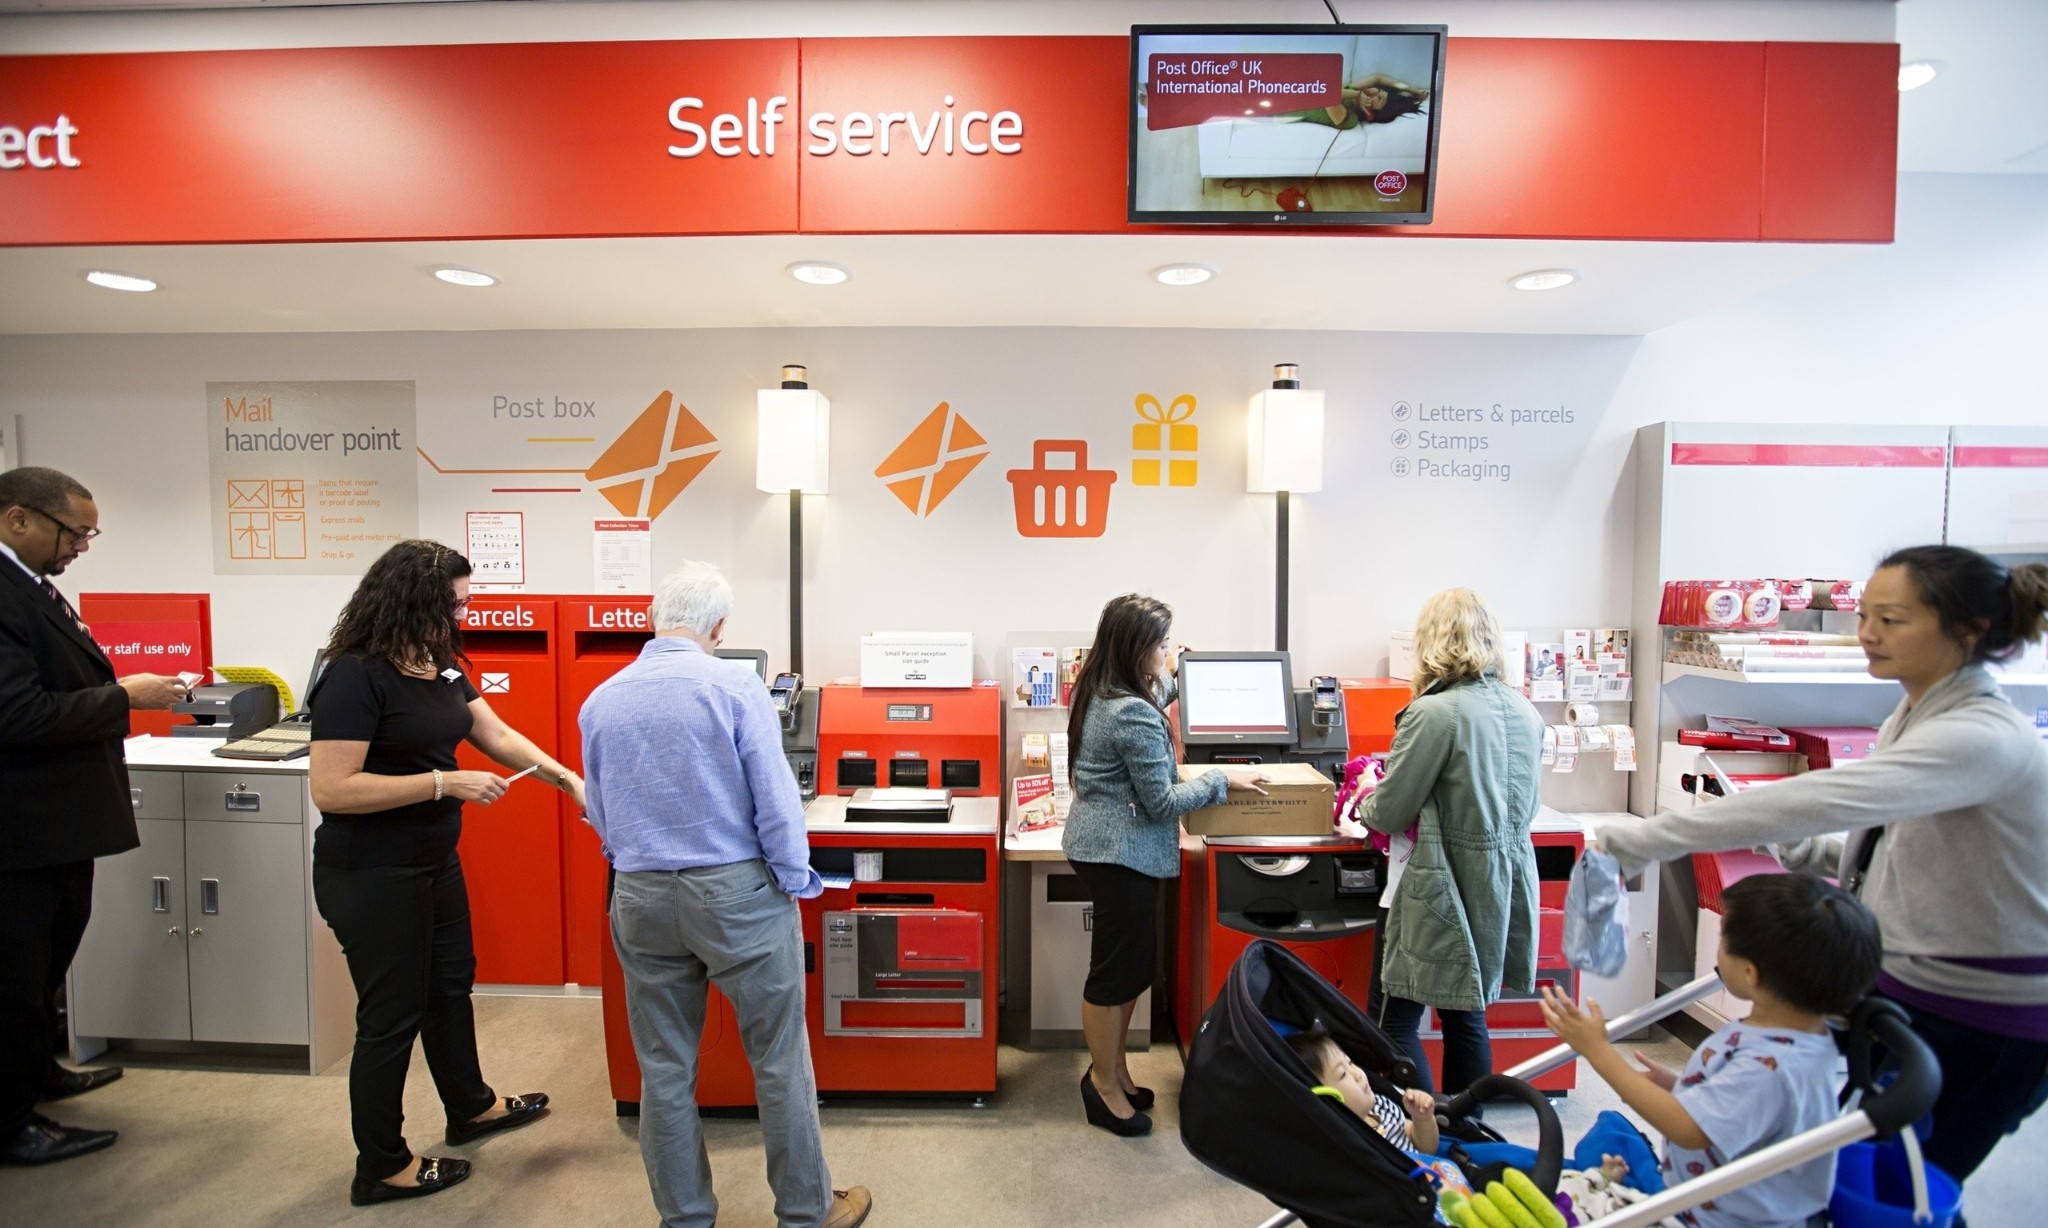 Automated lockers and self-service kiosks rule as Post Office hits digital age